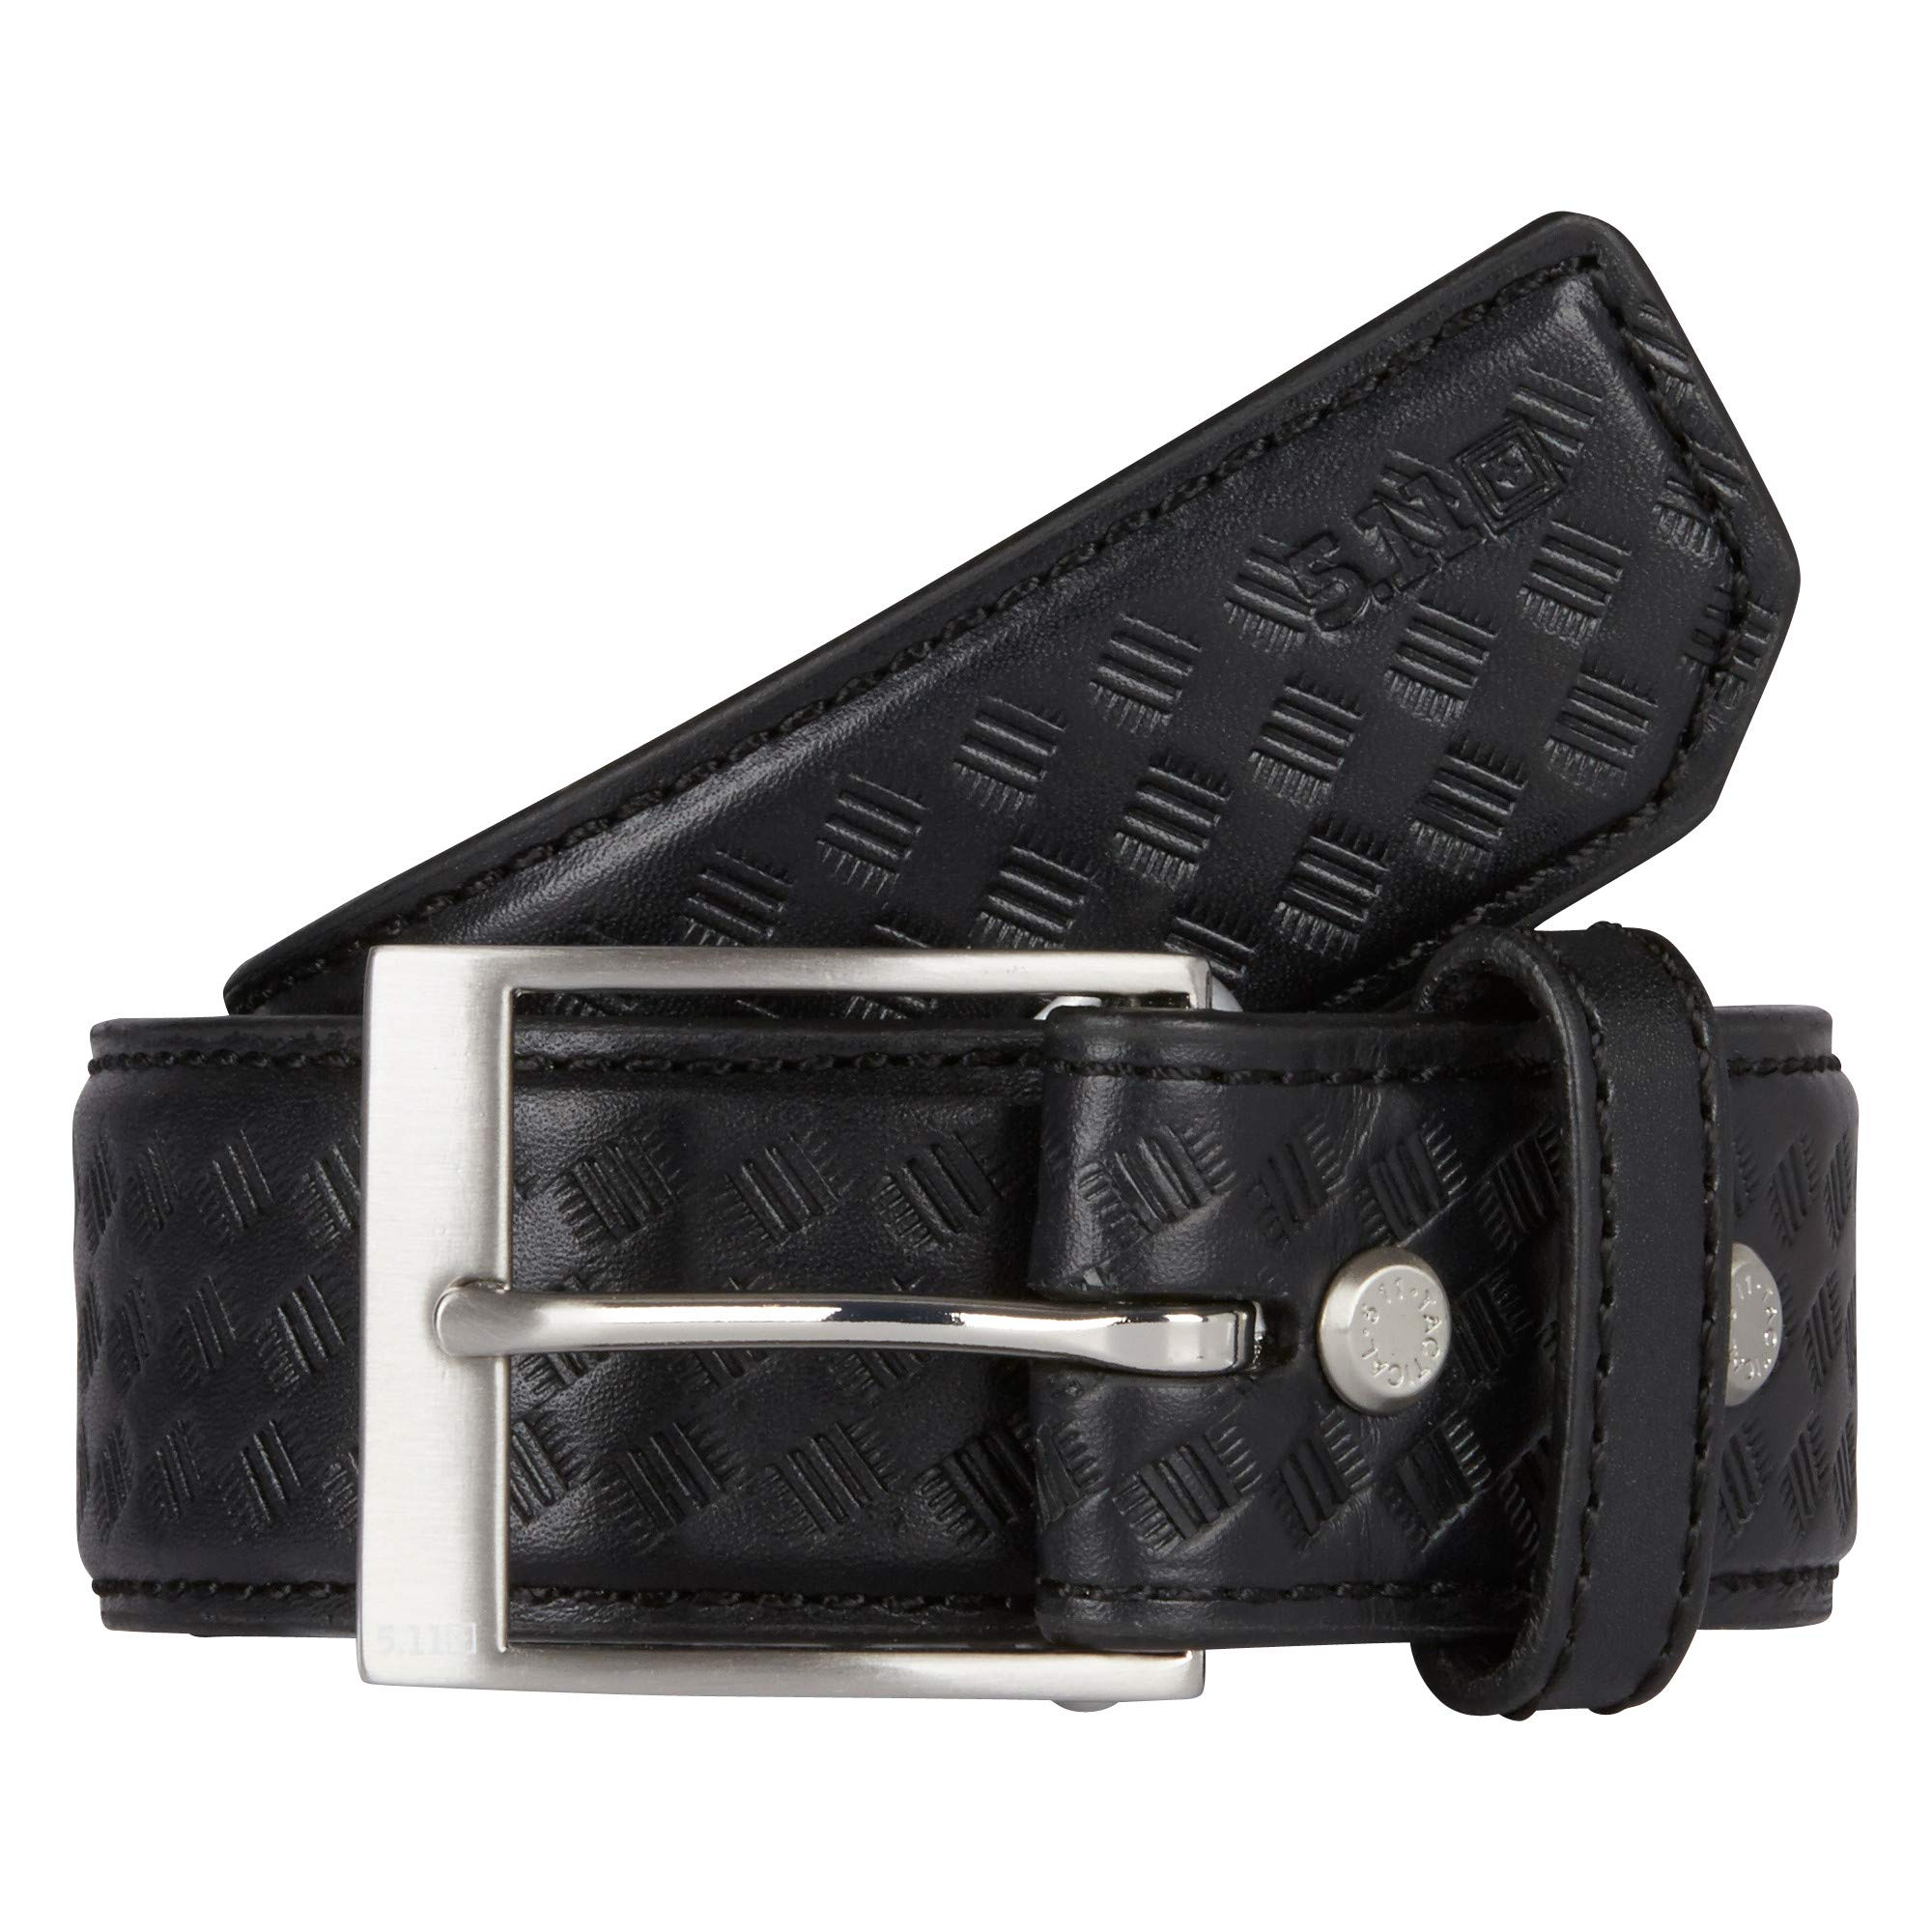 5.11 Tactical #59503 1.5-Inch Basketweave Leather Belt (Black, 3X-Large) by 5.11